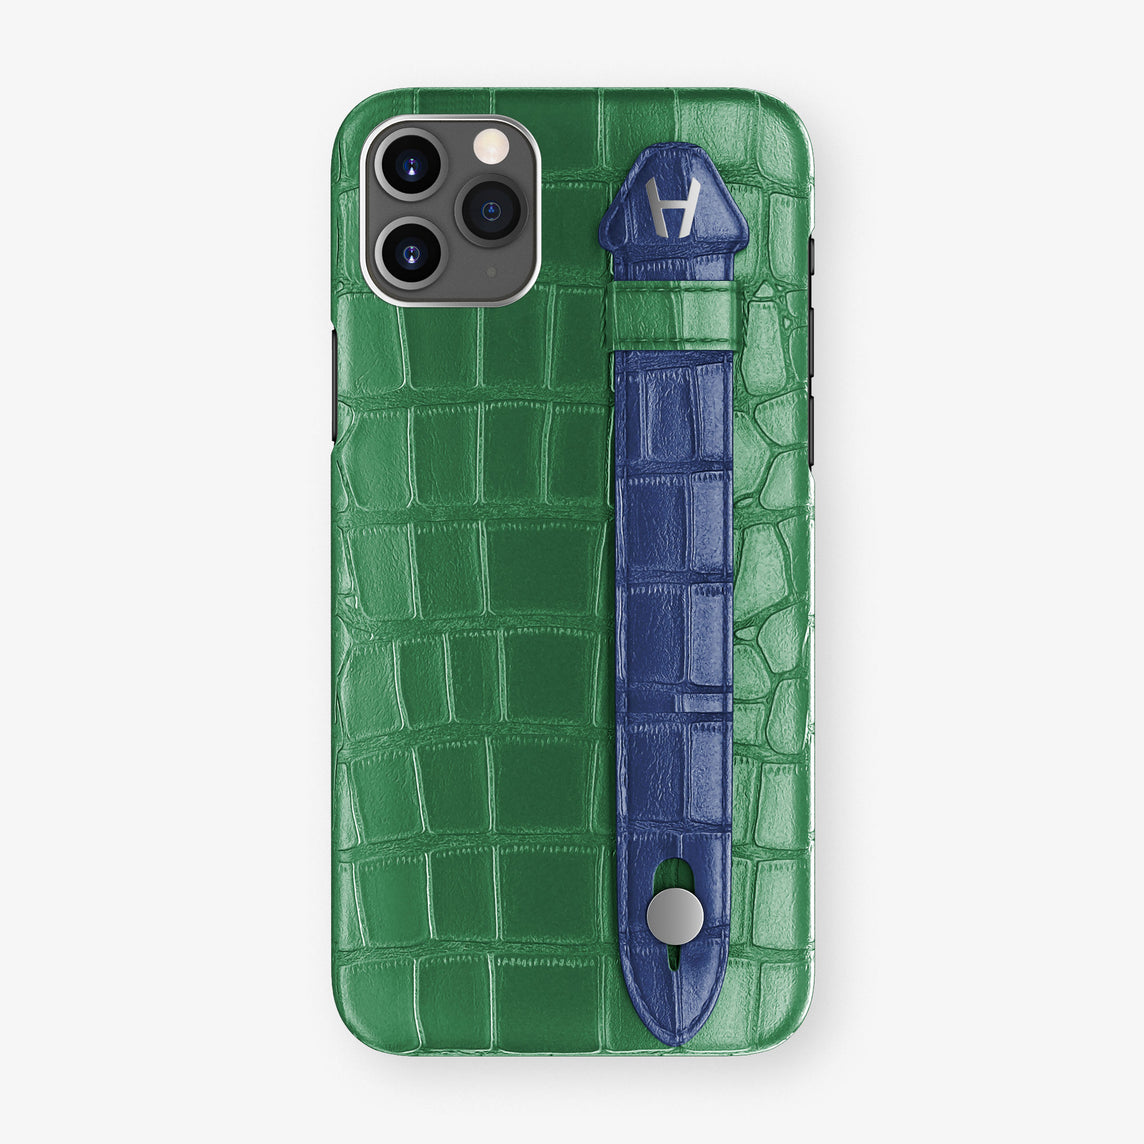 Alligator Side Finger Case Phone 11 Pro Max  | Green Emerald/Navy Blue - Stainless-Steel